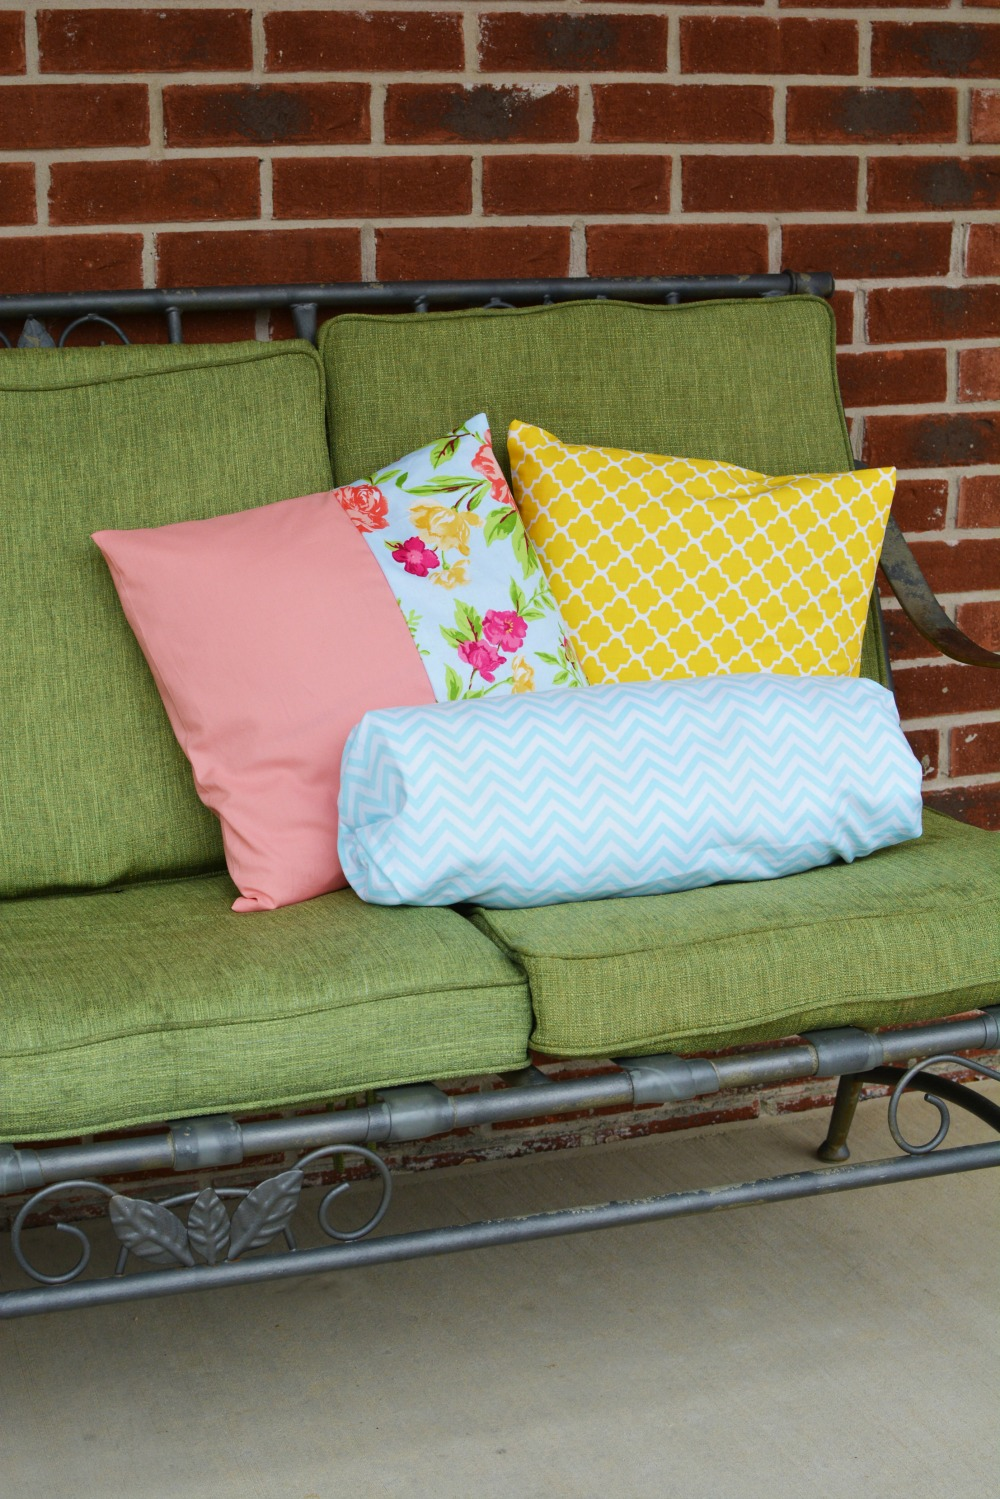 DIY Spring Throw and Bolster Pillows #WaverlyInspirations #InaWaverlyWorld